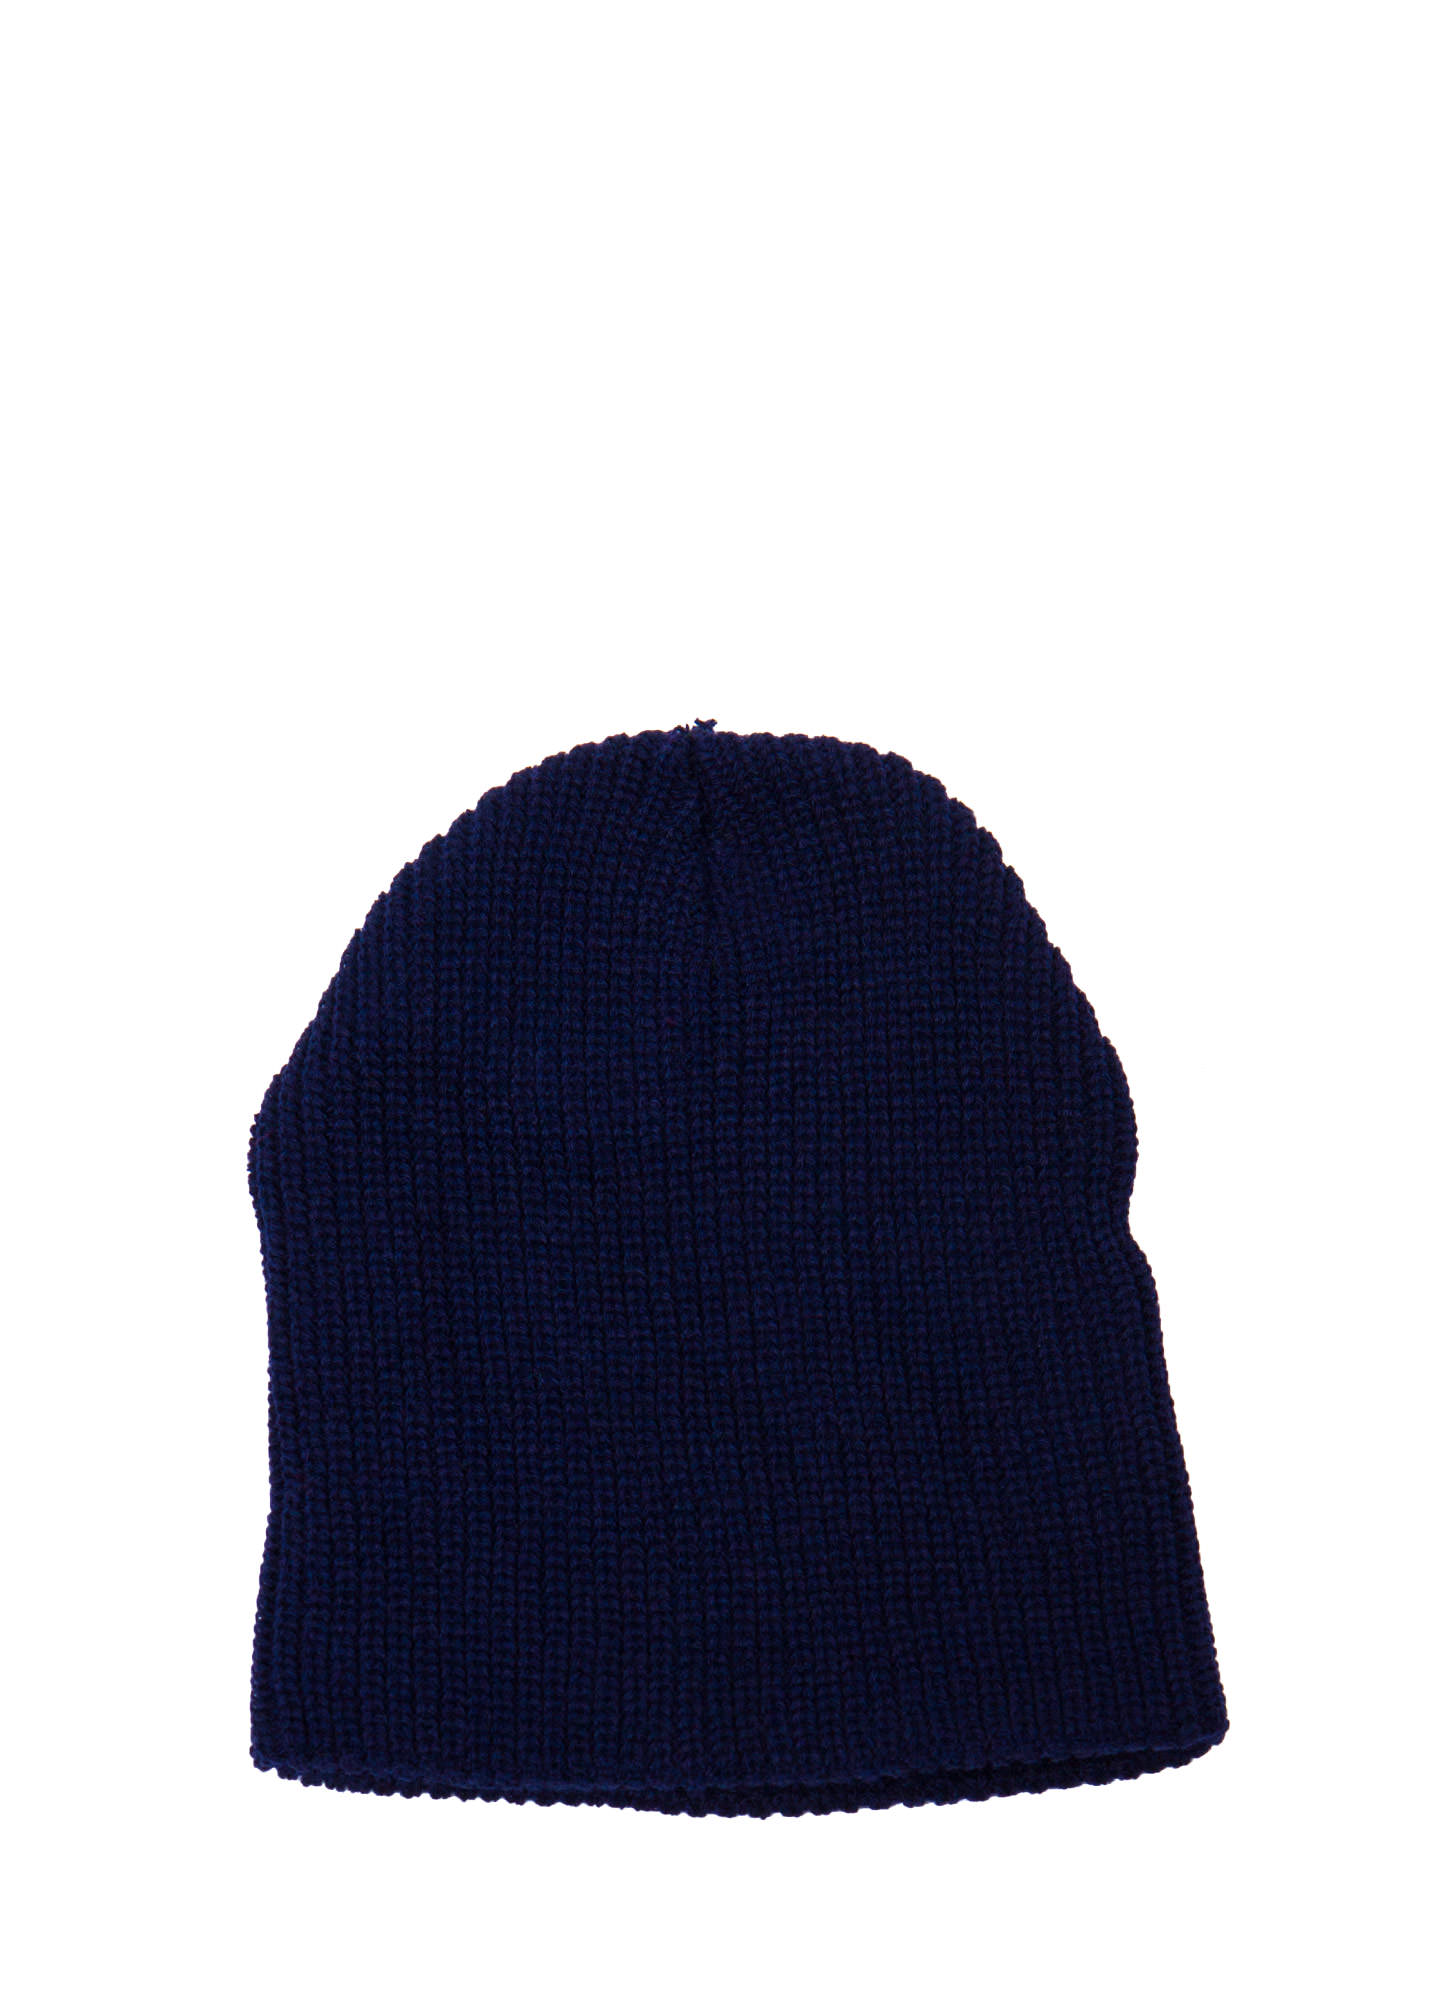 Heads Up Knit Beanie NAVY